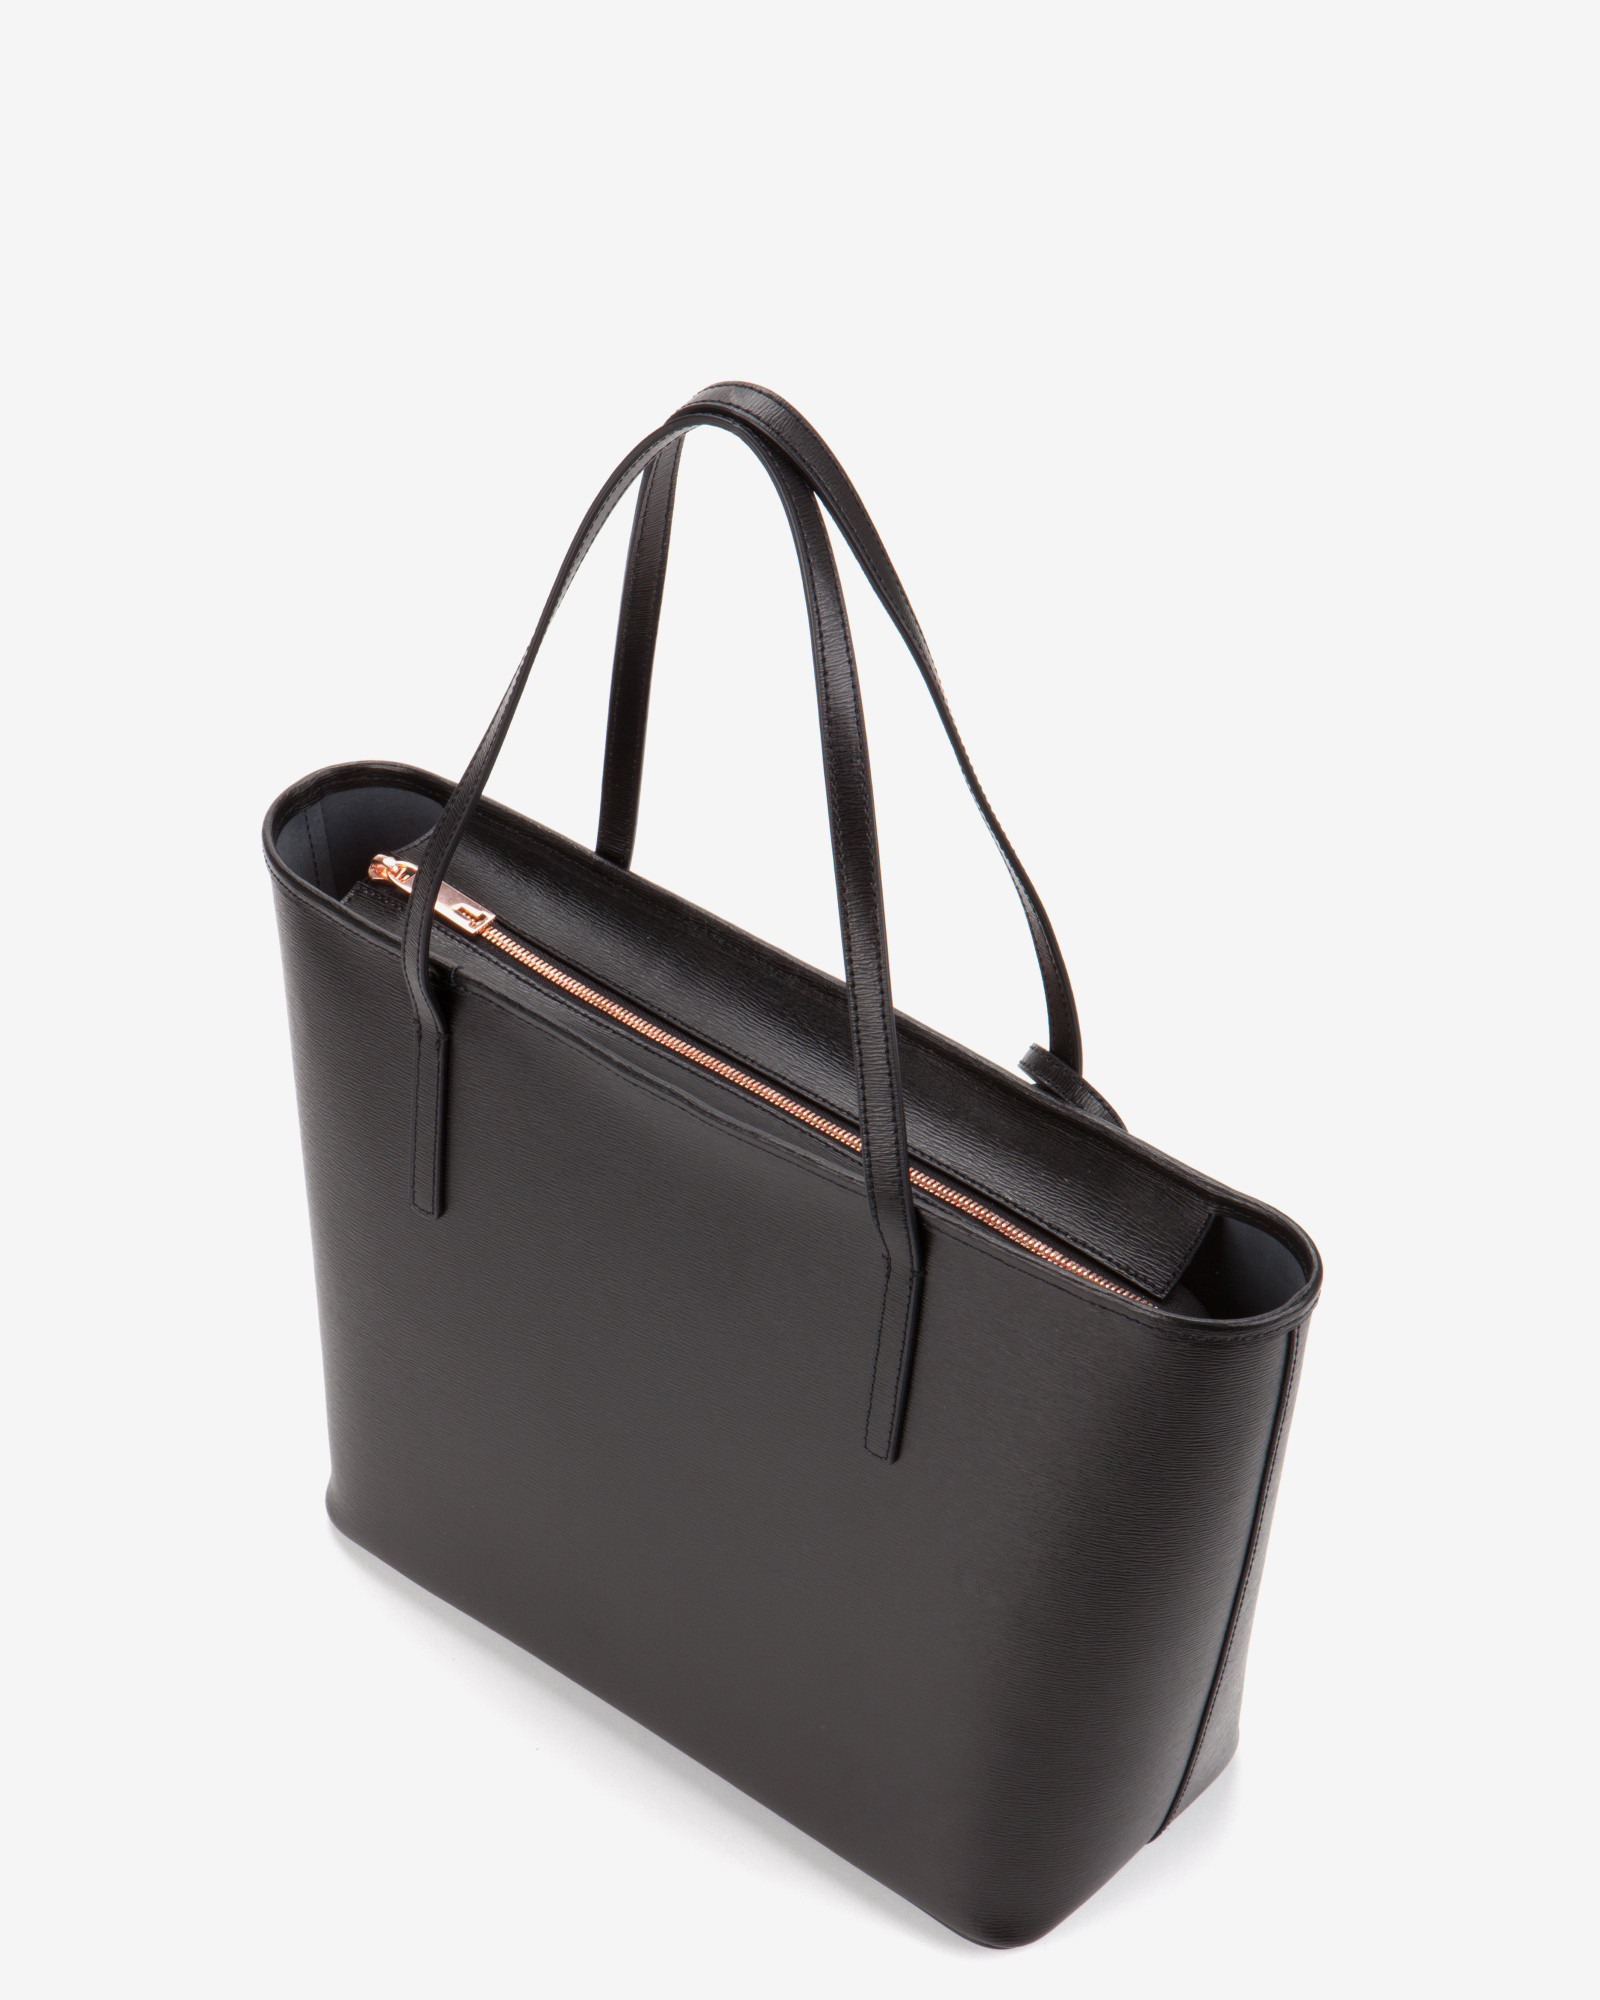 Ted baker Bonnita Leather Tote in Black | Lyst